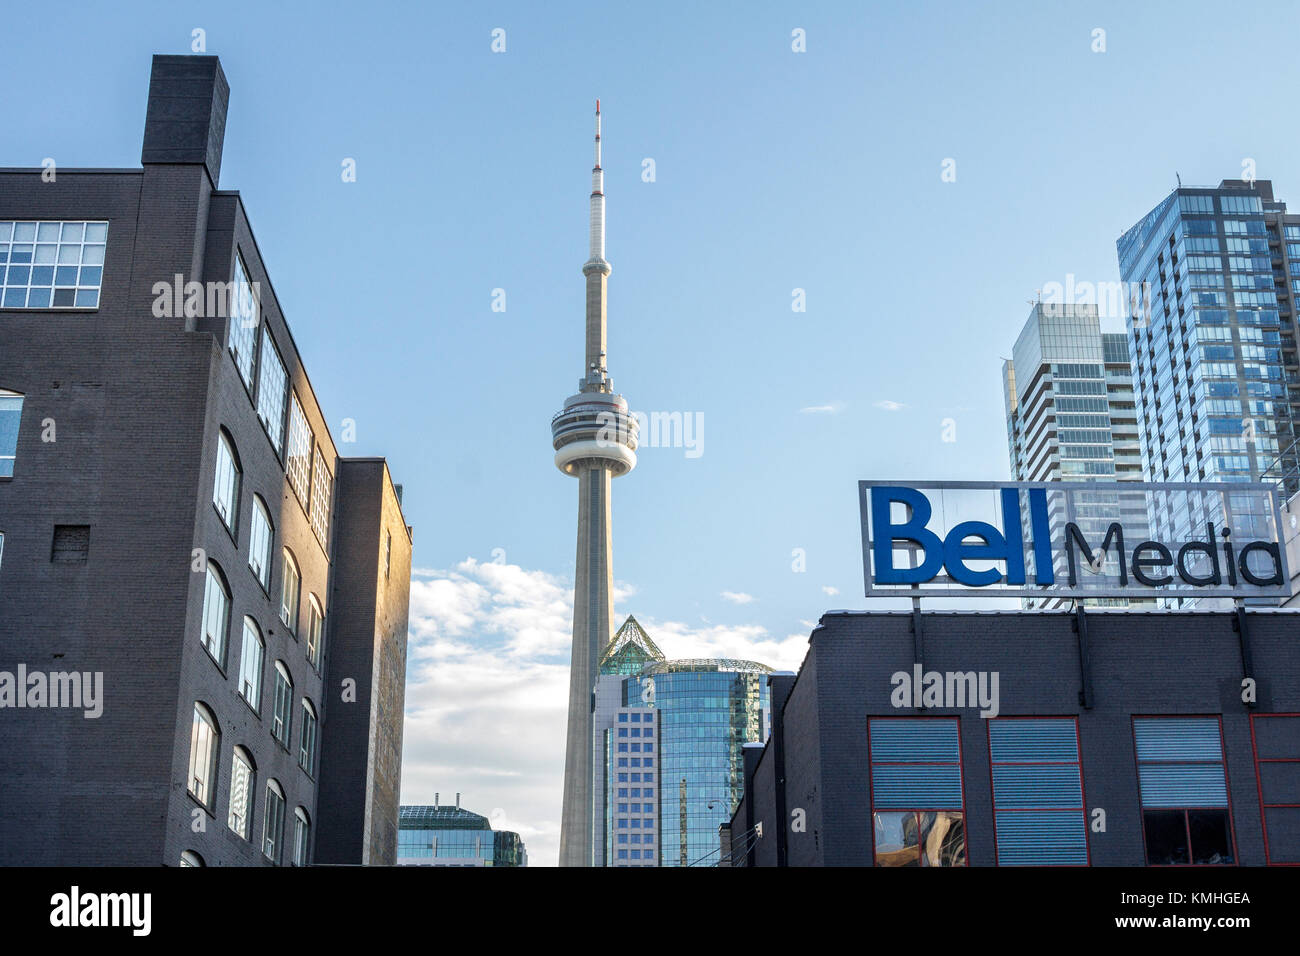 TORONTO, CANADA - DECEMBER 20, 2016: Bell Media main office for Toronto and its logo with the Canadian National - Stock Image